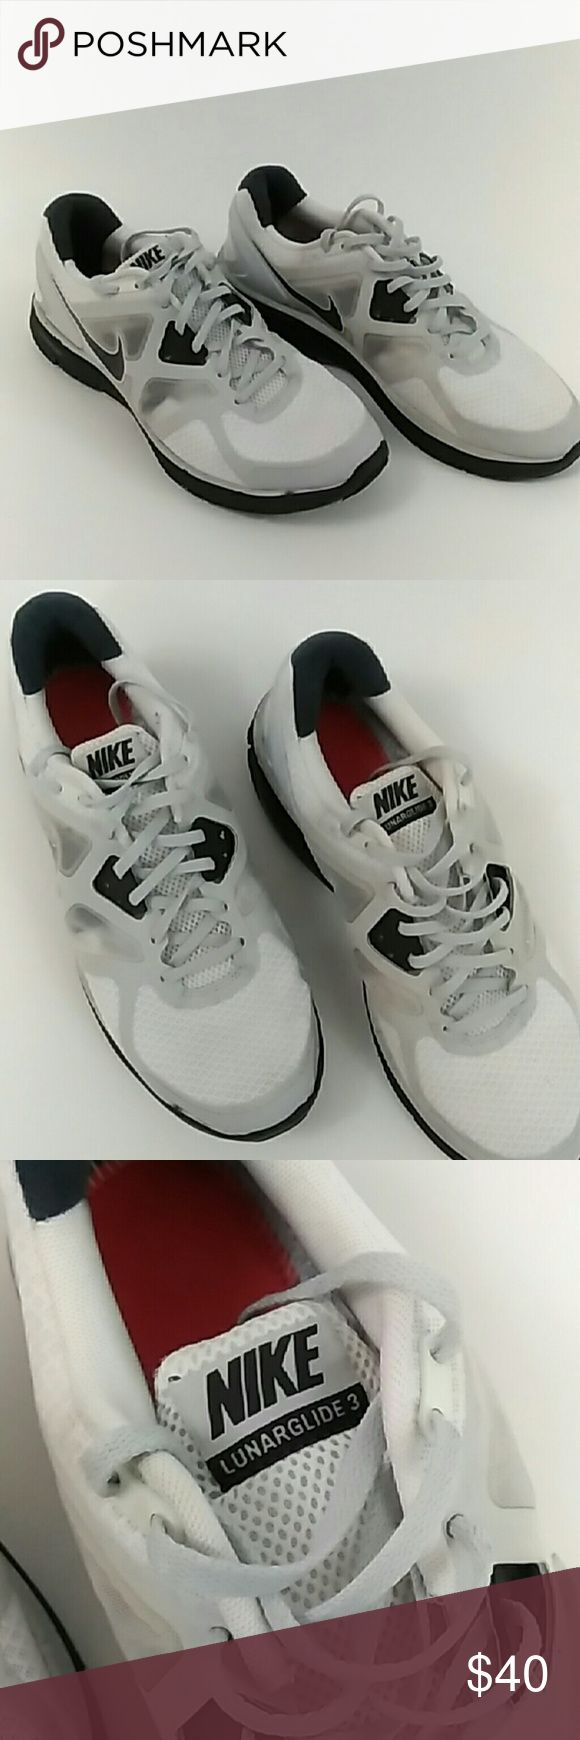 Nike Lunarglide 3 Used Nike Lunarglide 3 size 11.5. They have some flaws shown in pictures. Nike Shoes Sneakers